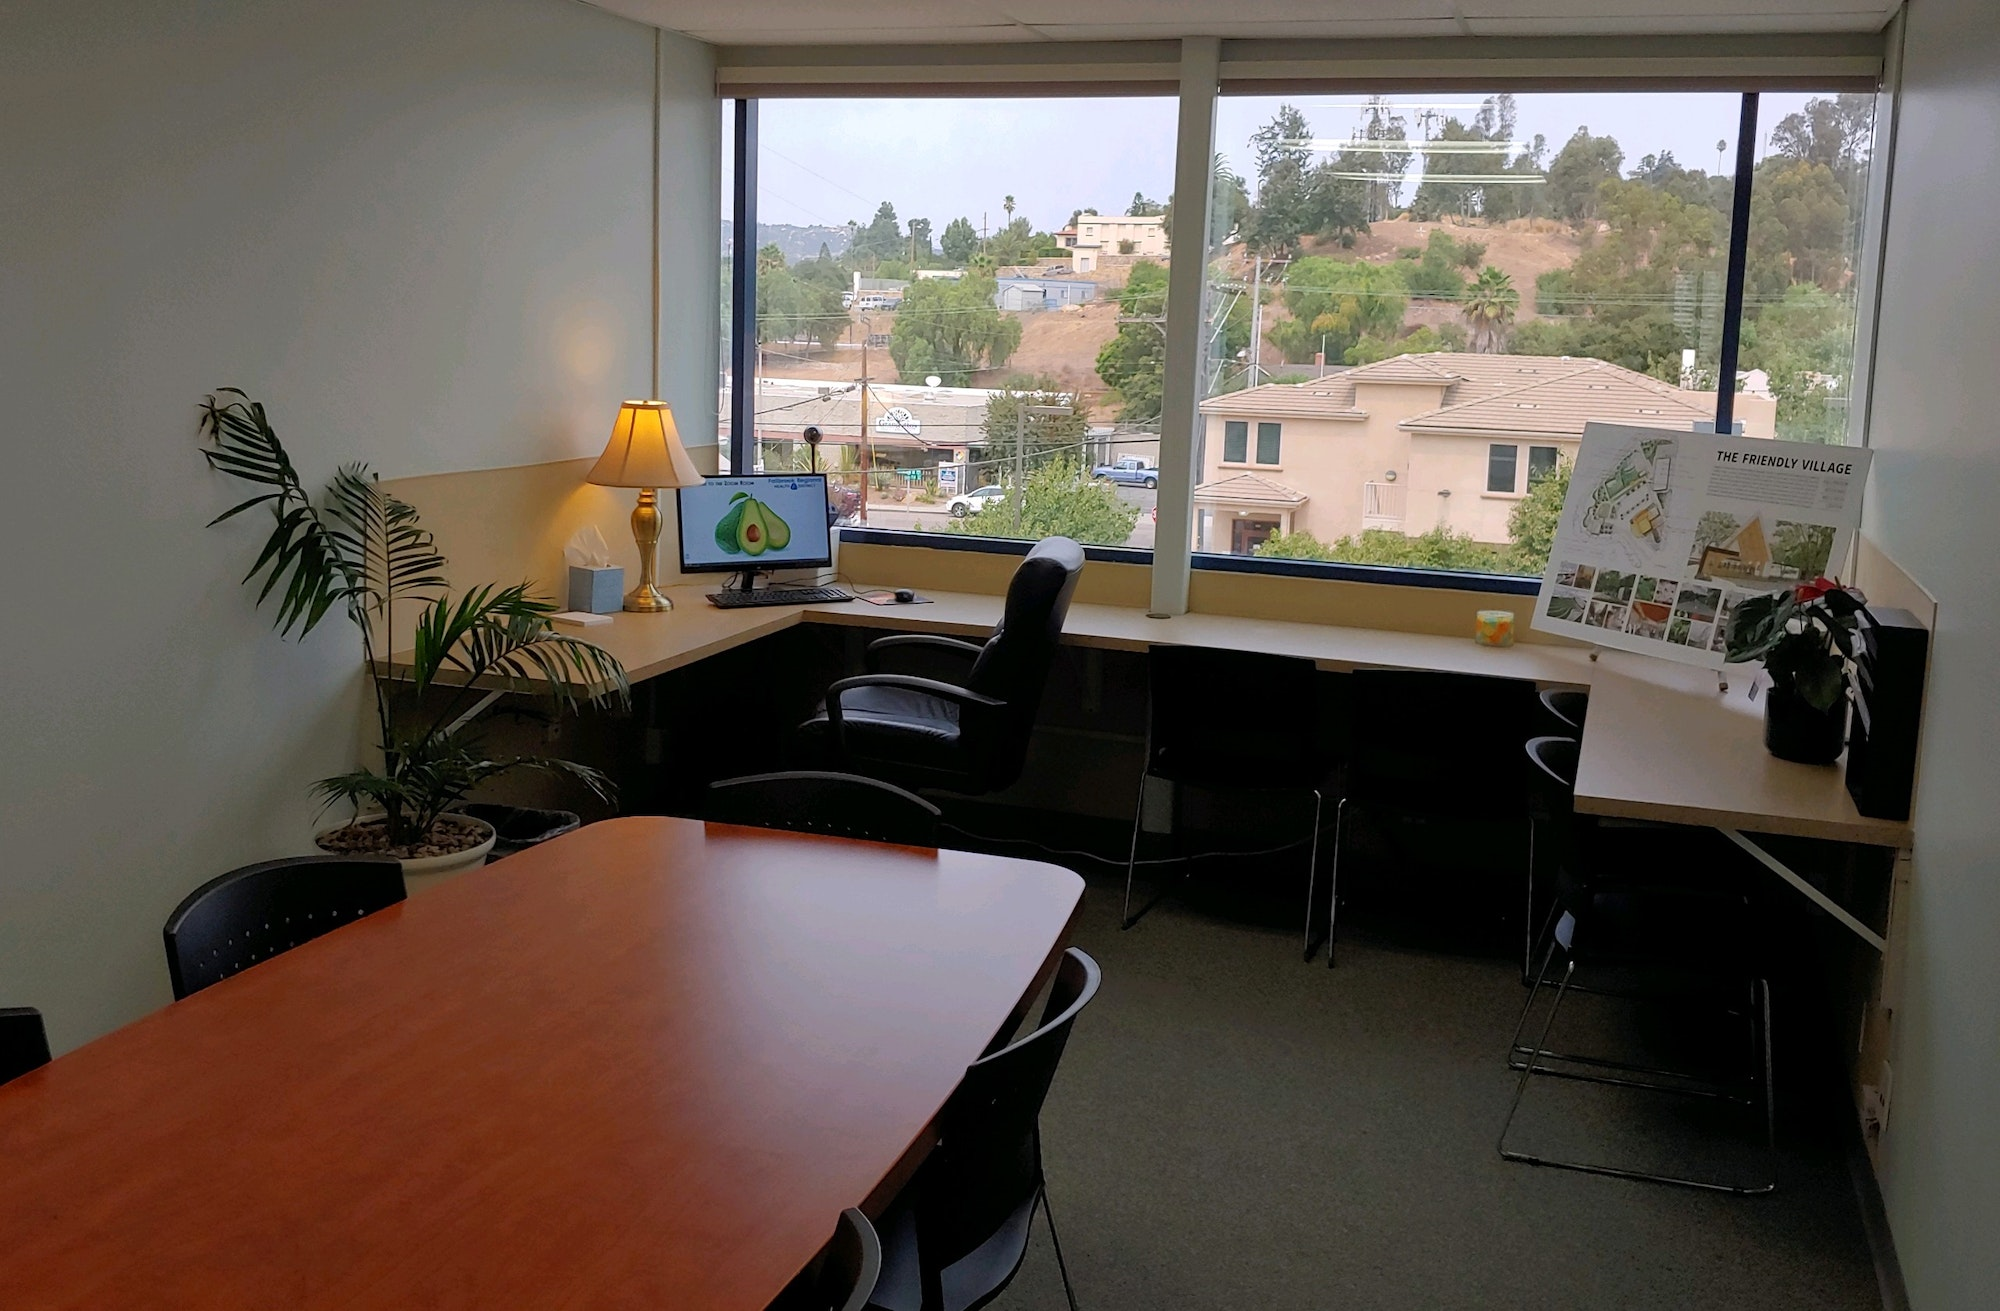 Photograph of room with a table, built-in desk, chairs and computer.